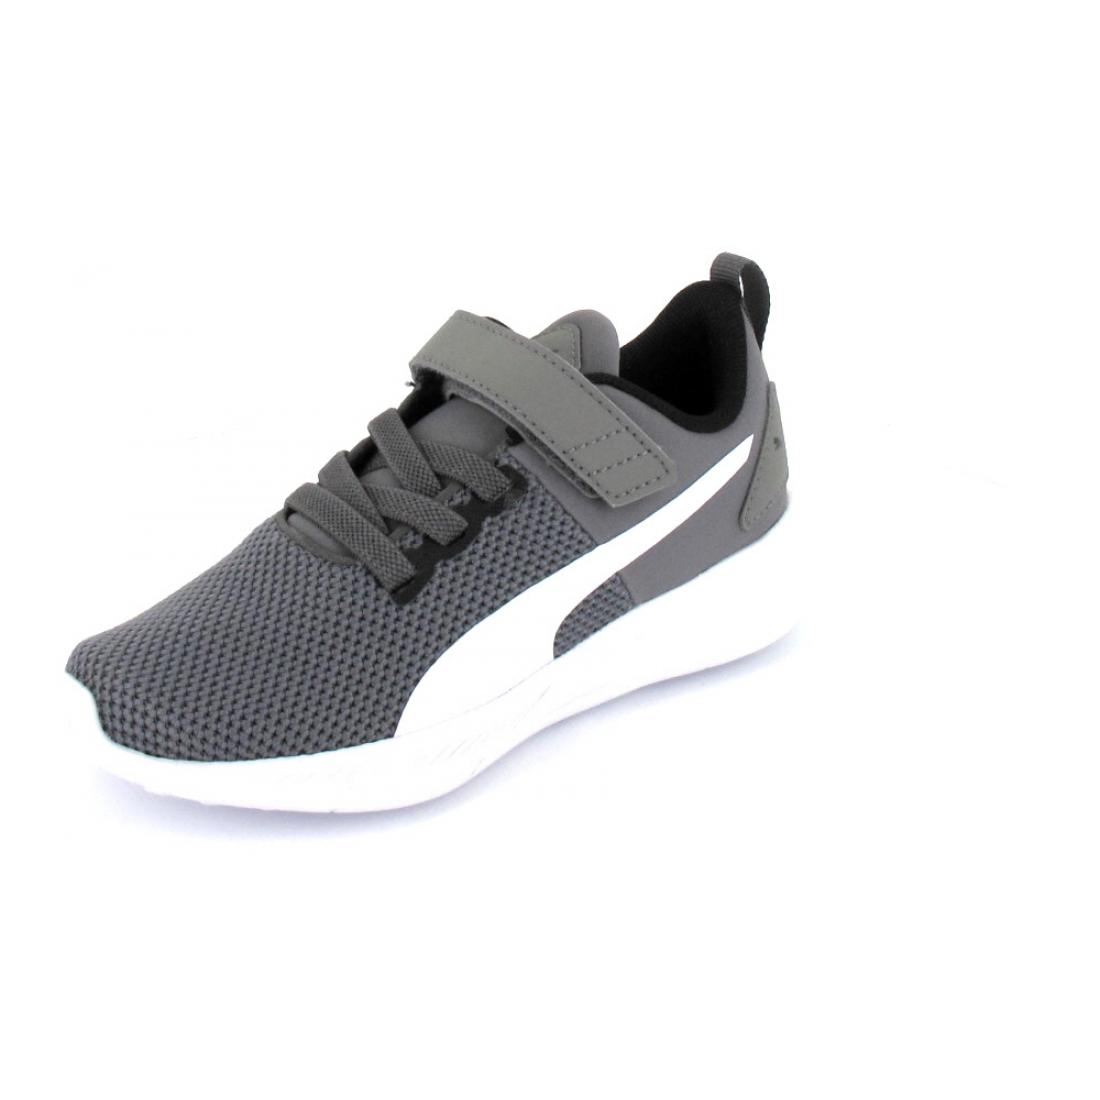 Puma Sneaker FLYER RUNNER V PS